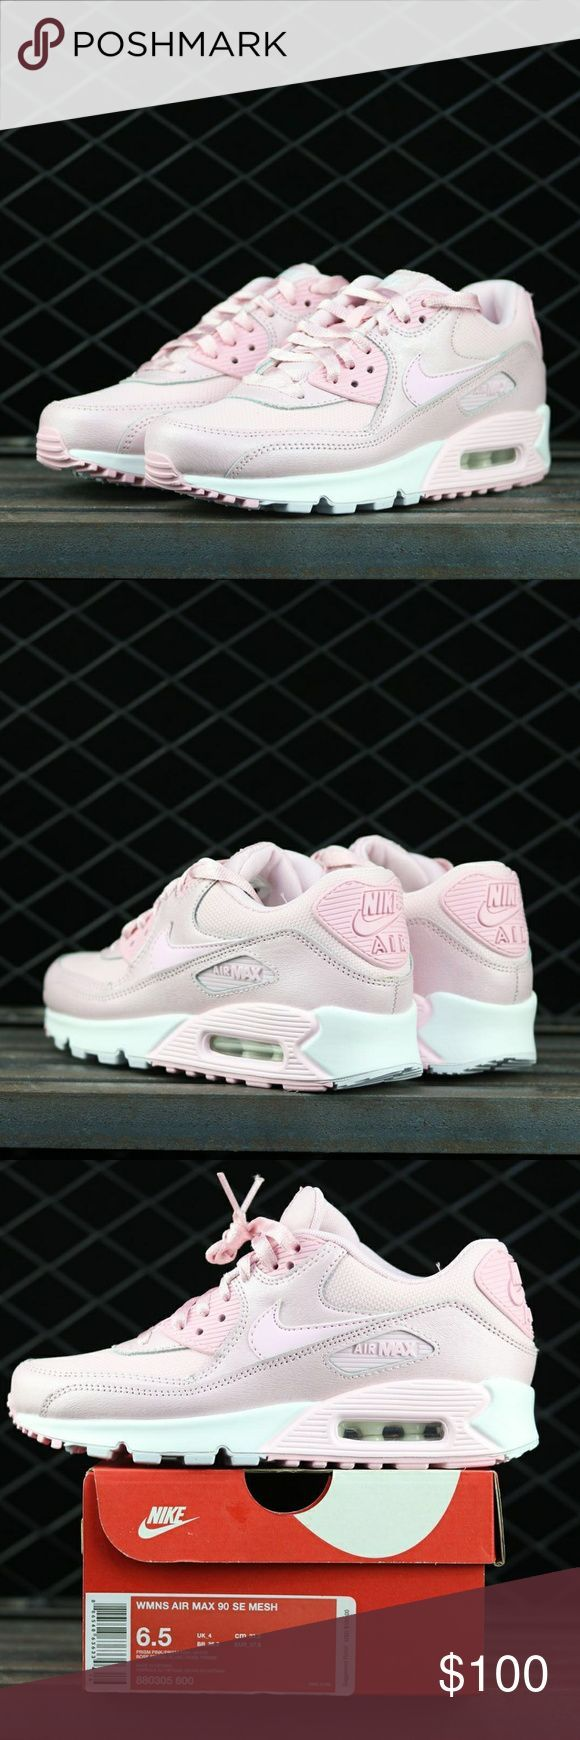 Nike Airmax 90 Gs Limited Edition Barbie Pink Nike Air Max 90 Gs Limited Edition Barbie Pink Condition Is New Nike Air Max Pink Barbie Pink Nike Air Max